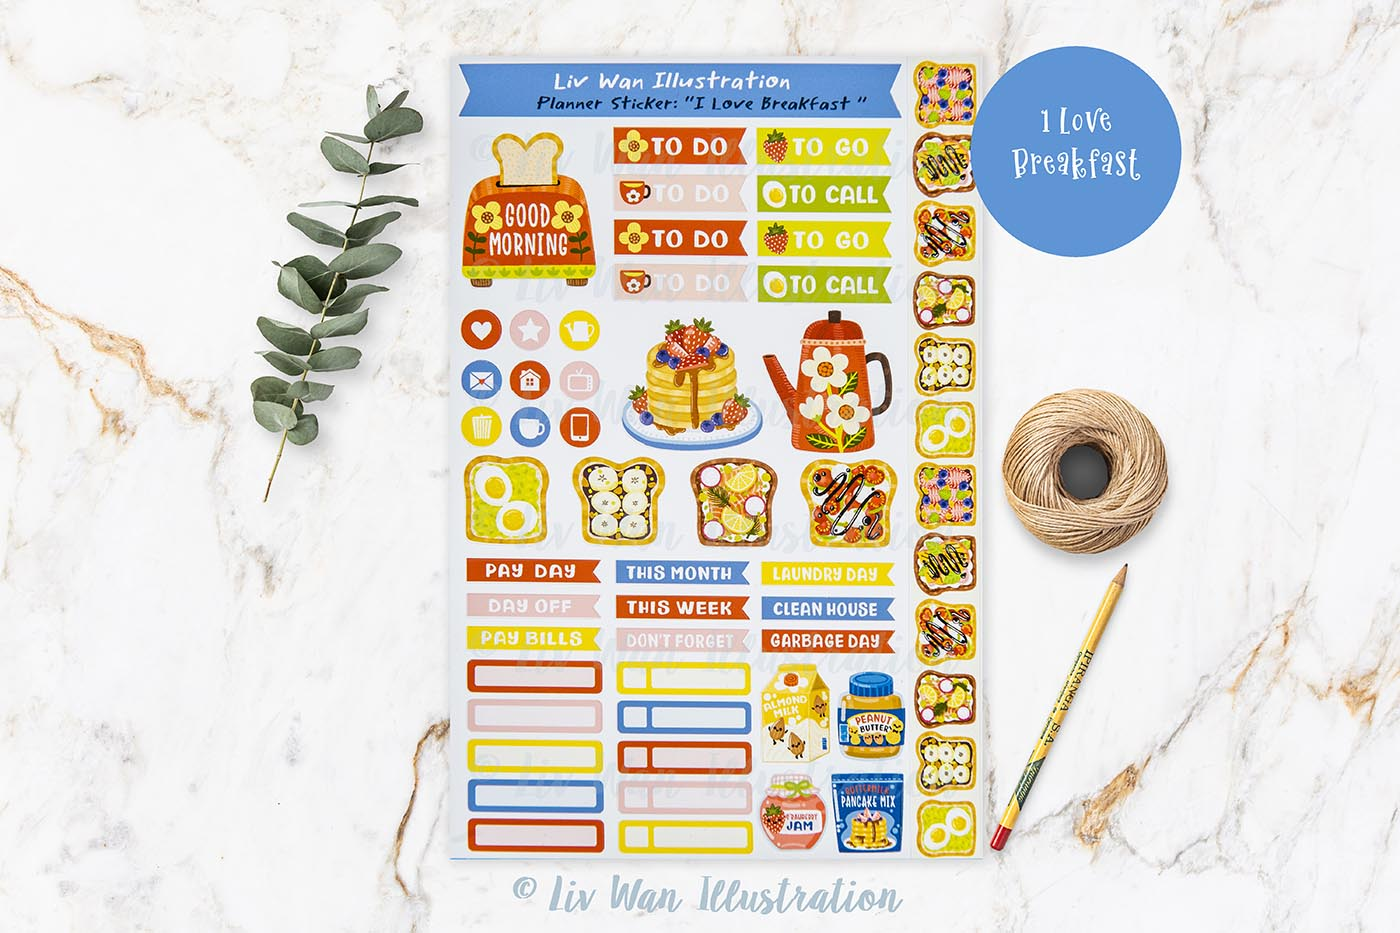 I Love Breakfast Planner Stickers